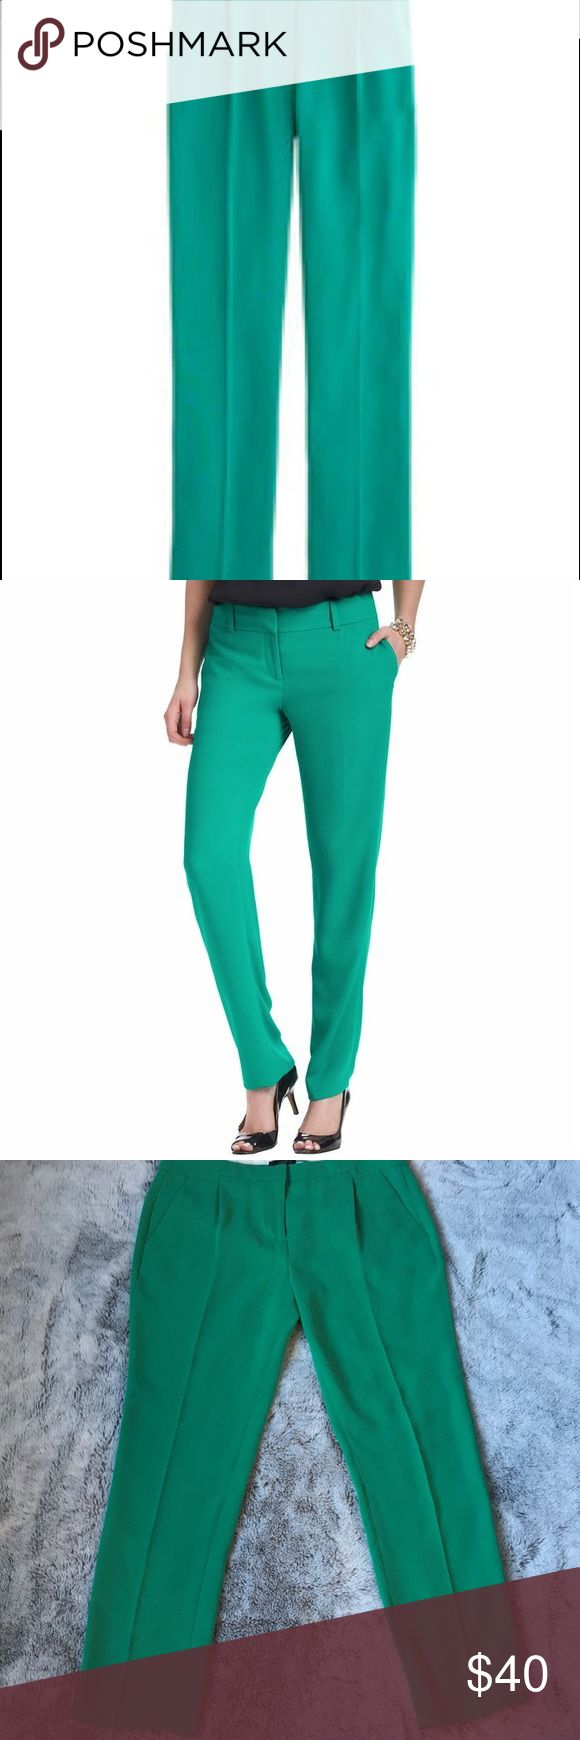 """J. Crew Pleated Crepe Pant J. Crew Pleated Crepe Pant. These gorgeous Kelly green pants are perfect for Spring!! Waist 34"""", inseam 29"""". All measurements are approximate. J. Crew Pants"""